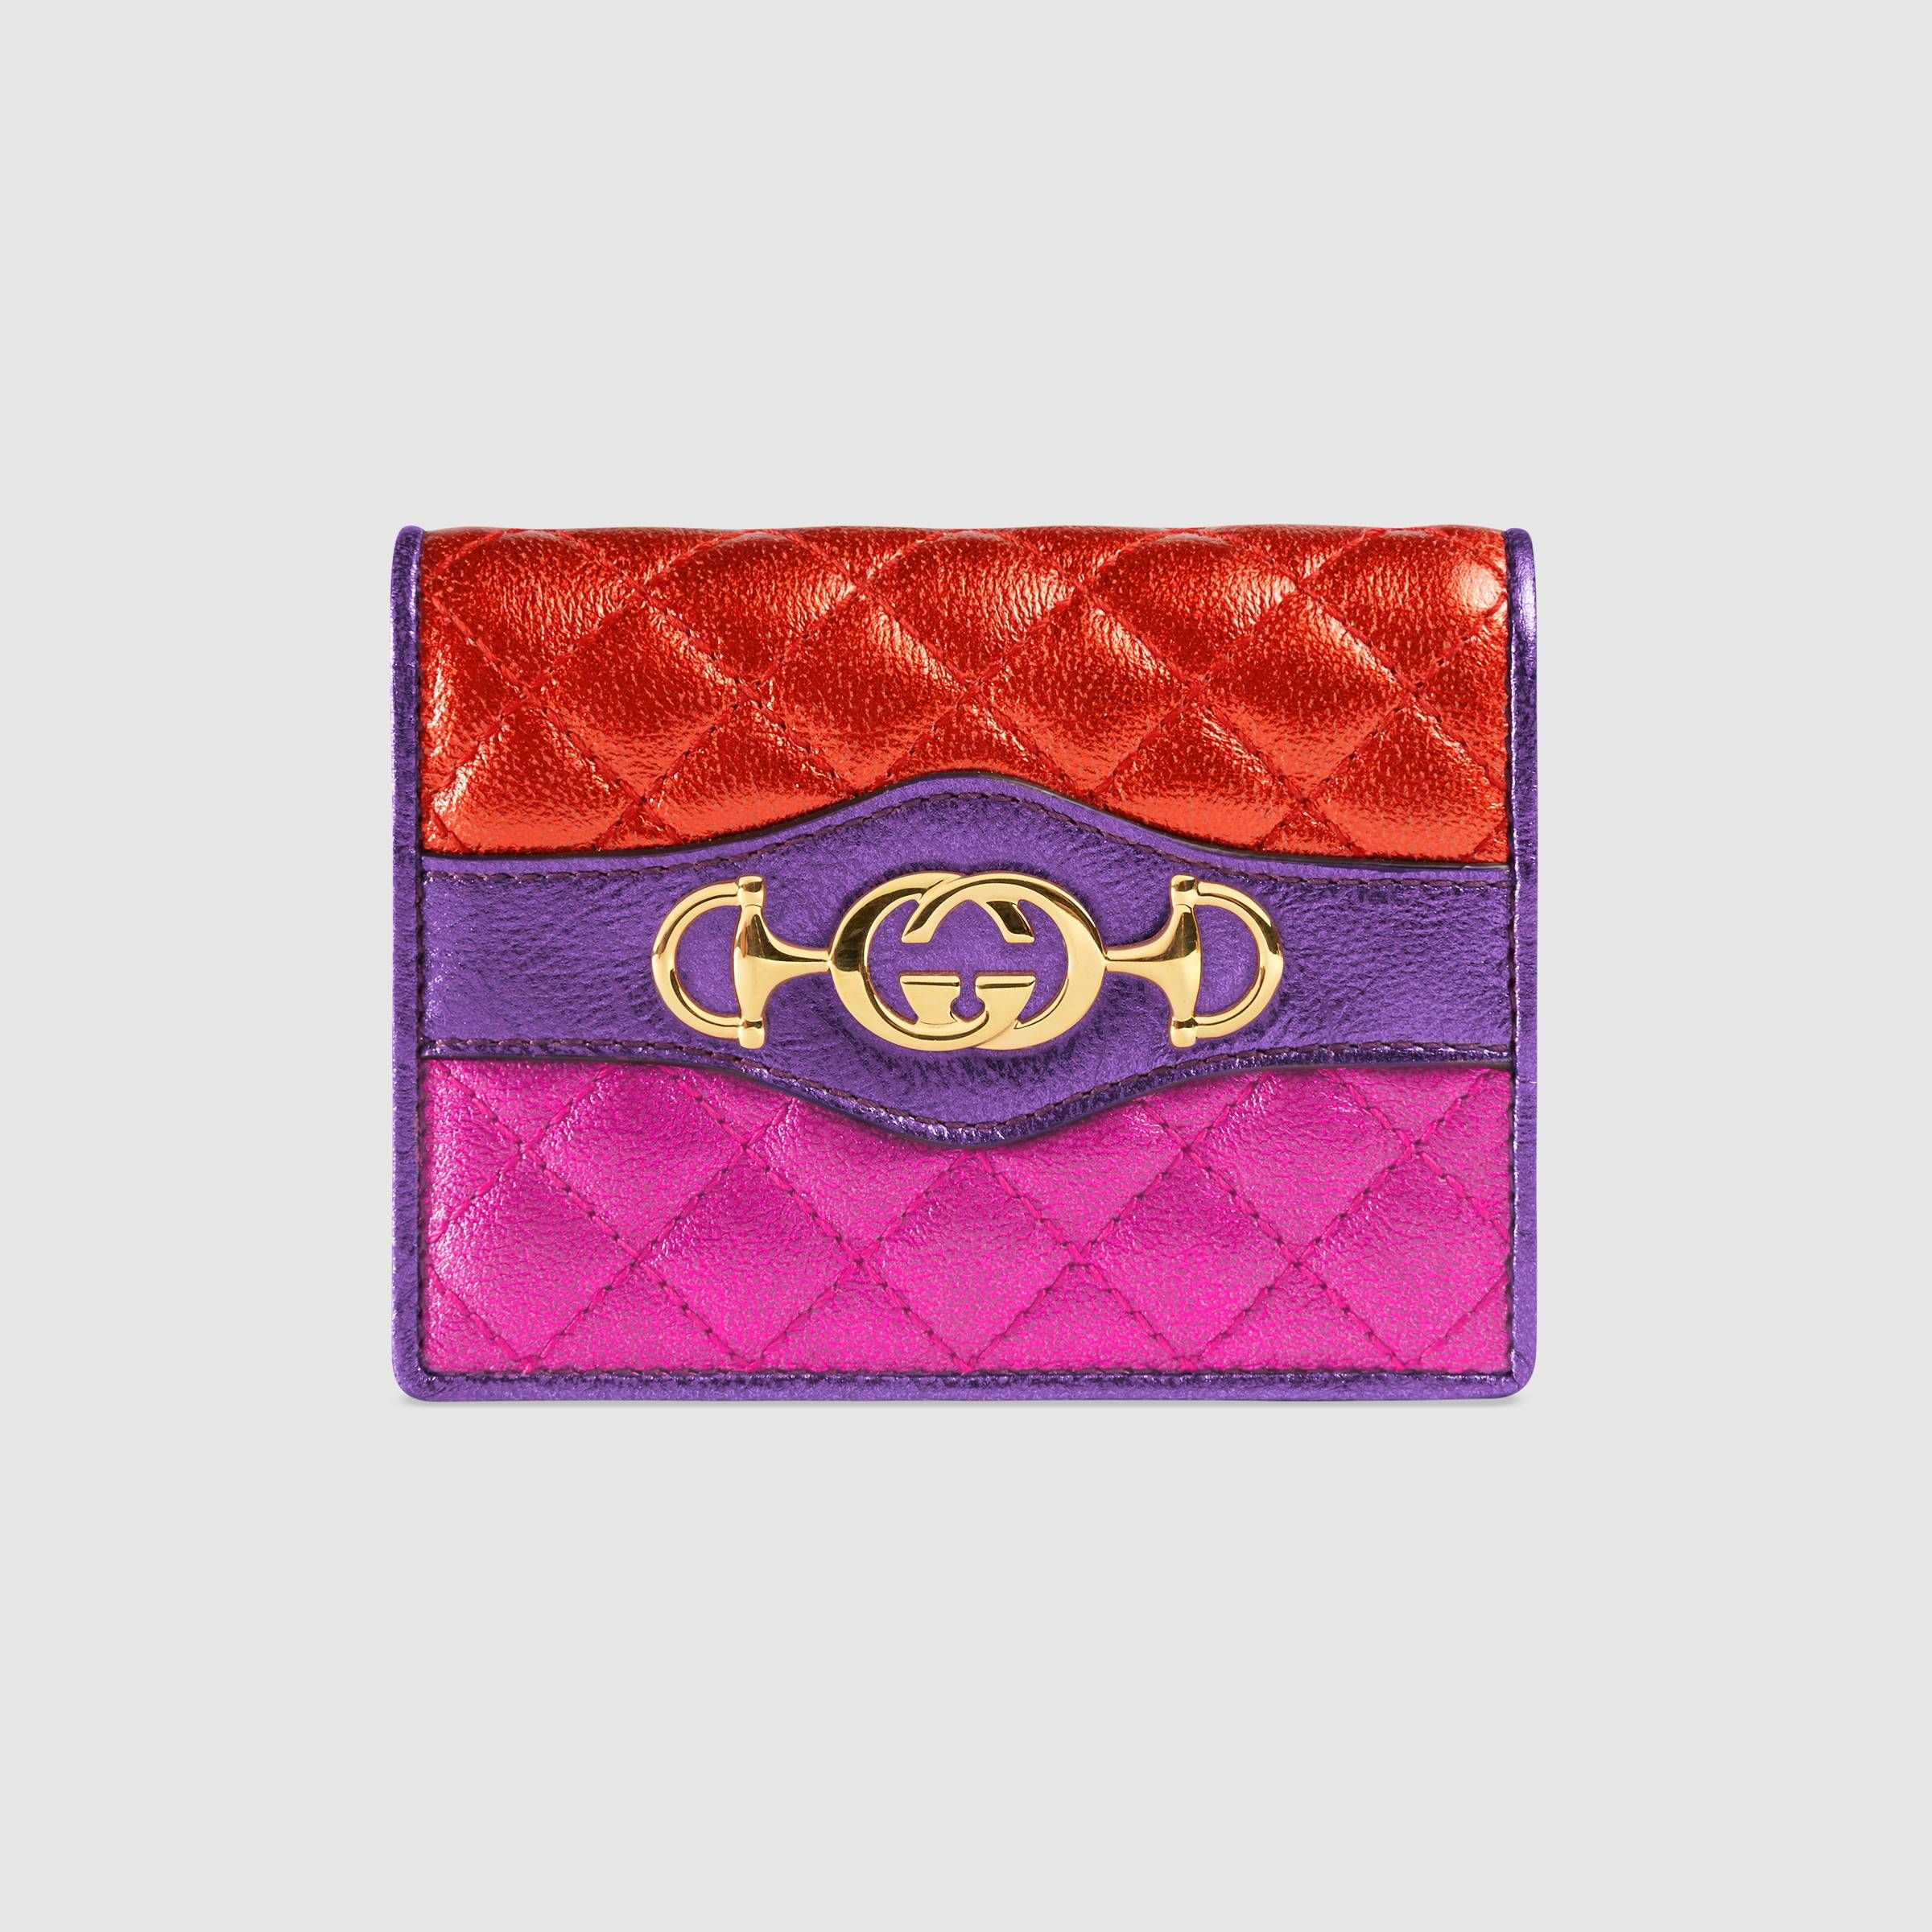 ad39285b81ea Laminated leather card case - Gucci Gifts for Women 5363530U1OC6486